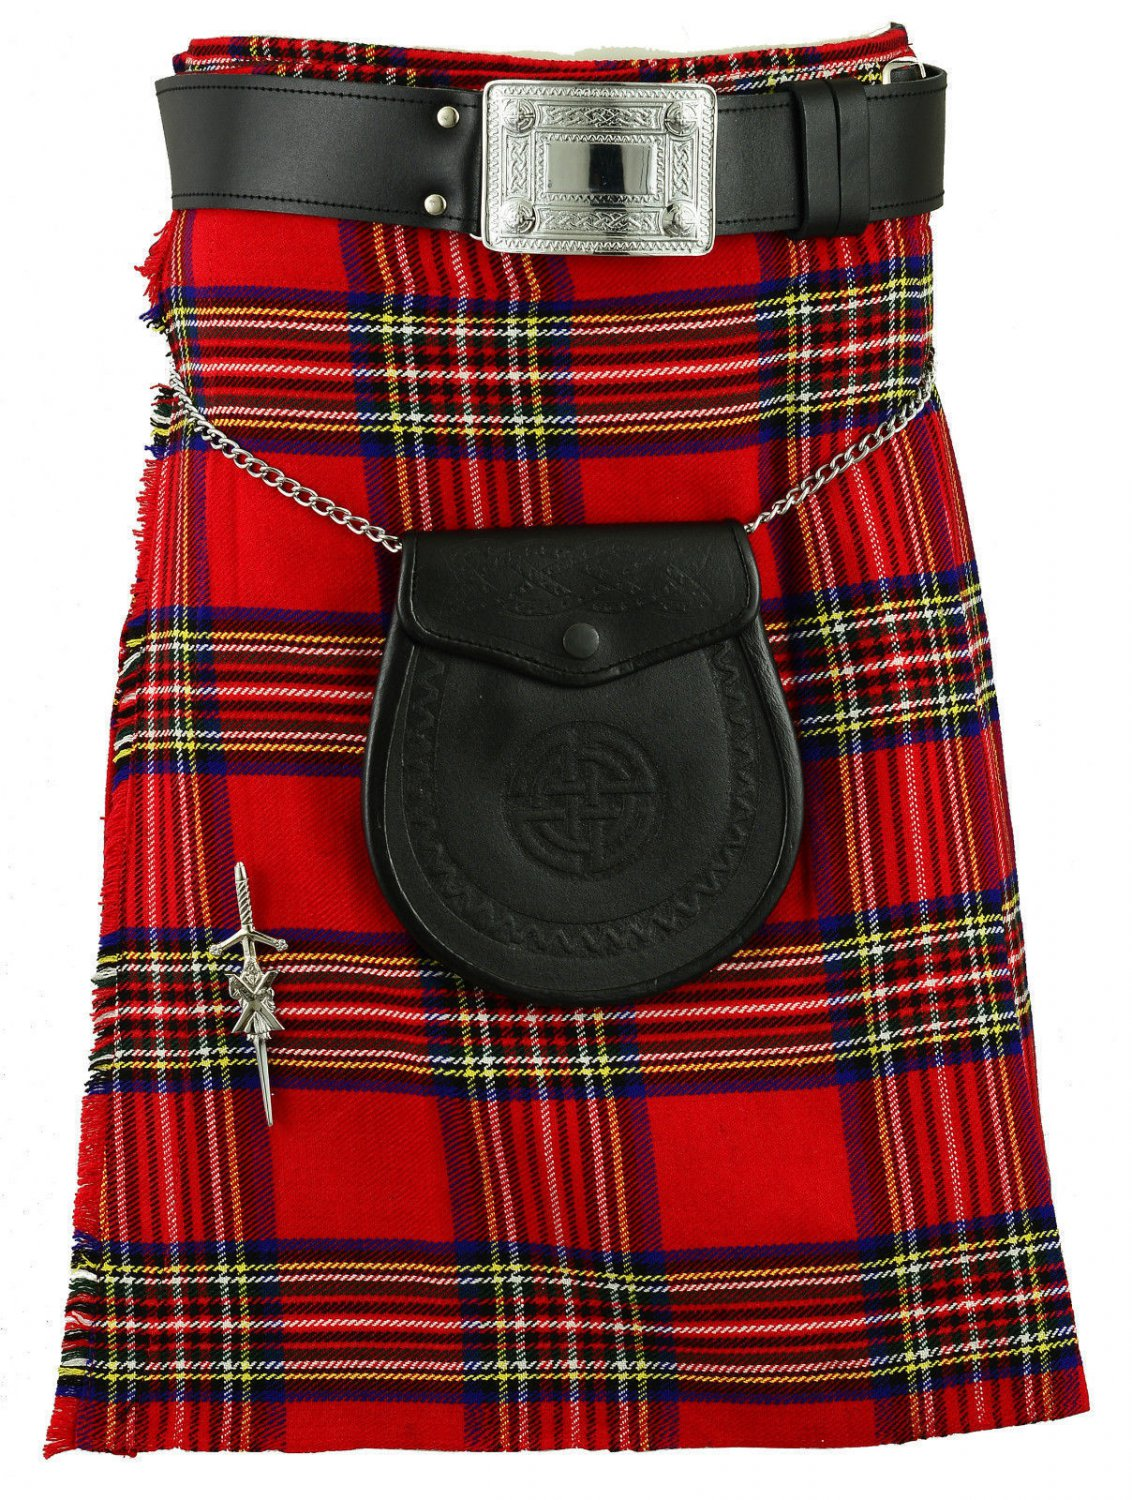 Traditional Royal Stewart Tartan Kilts Scottish Highland Utility Size 30 Sports Kilt for Men